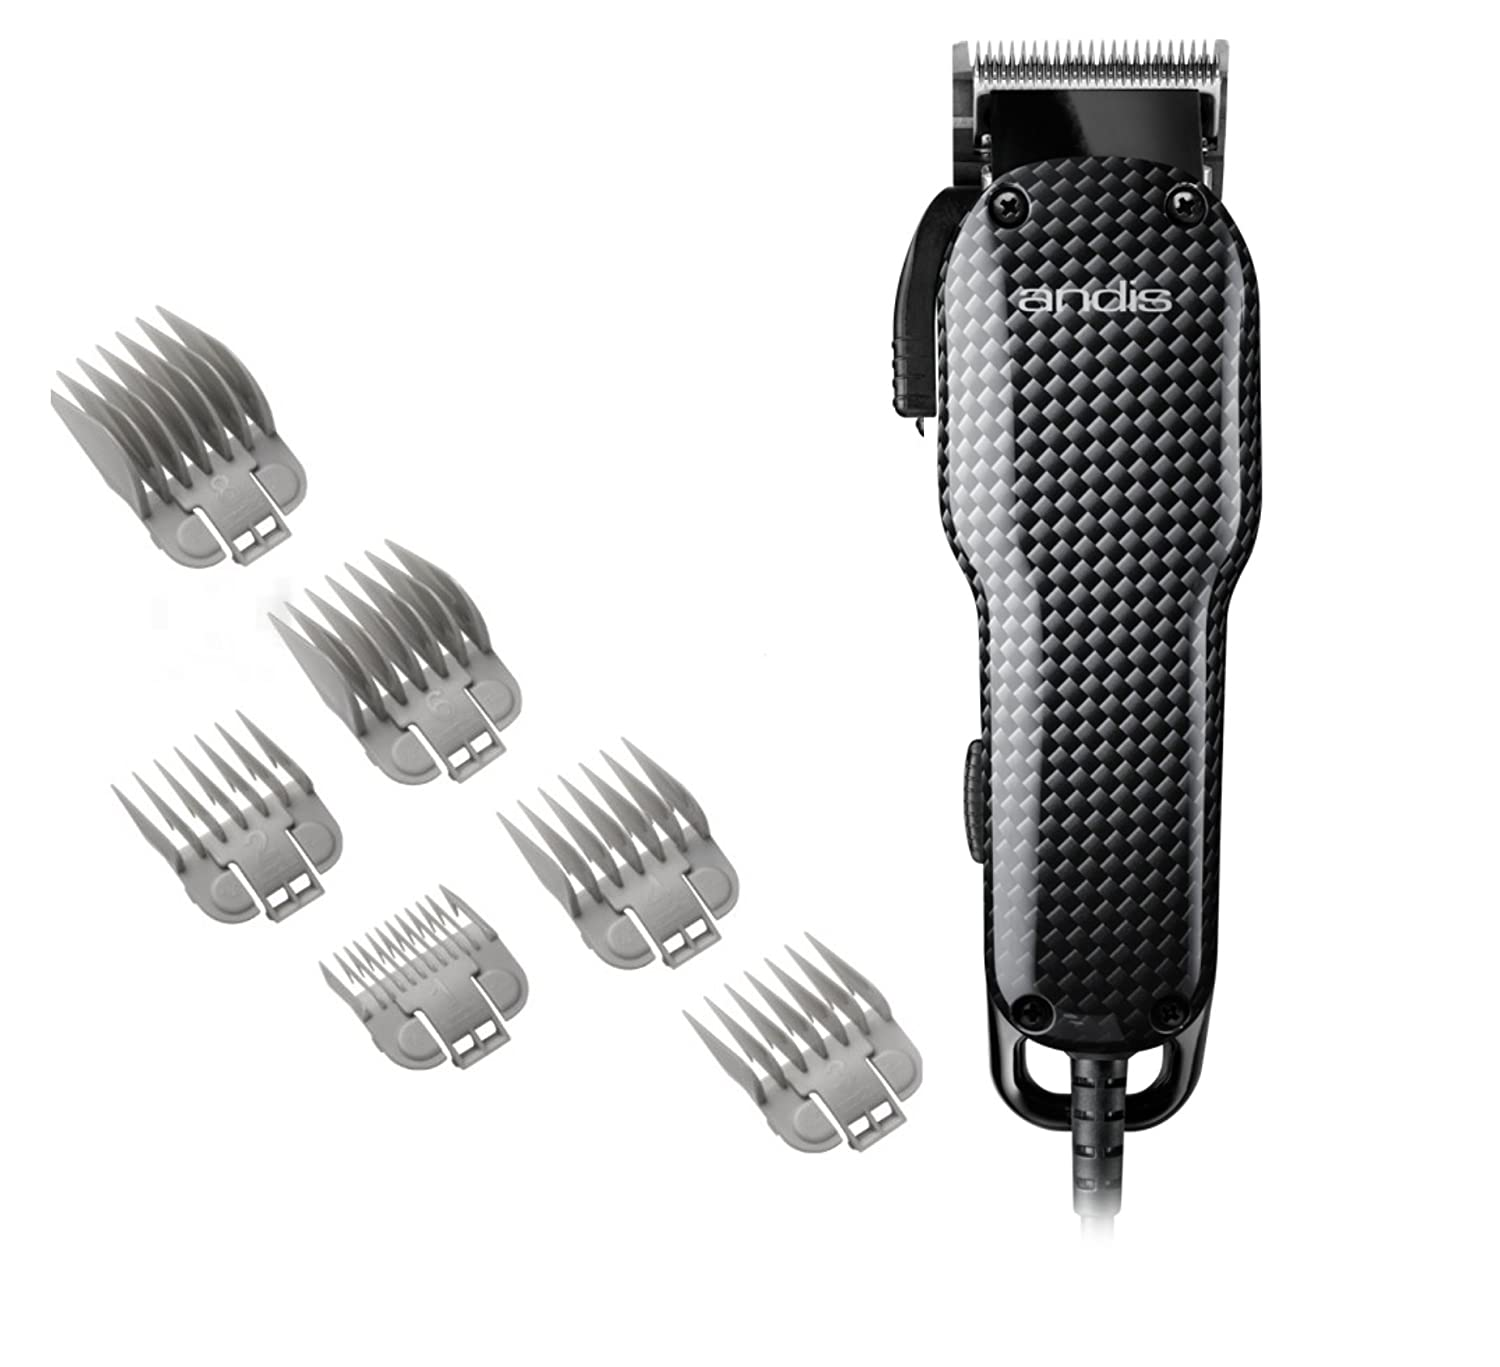 Andis Professional Envy Hair Clipper with Adjustable Blade, Model US-1, Red 66215 Carbon Black